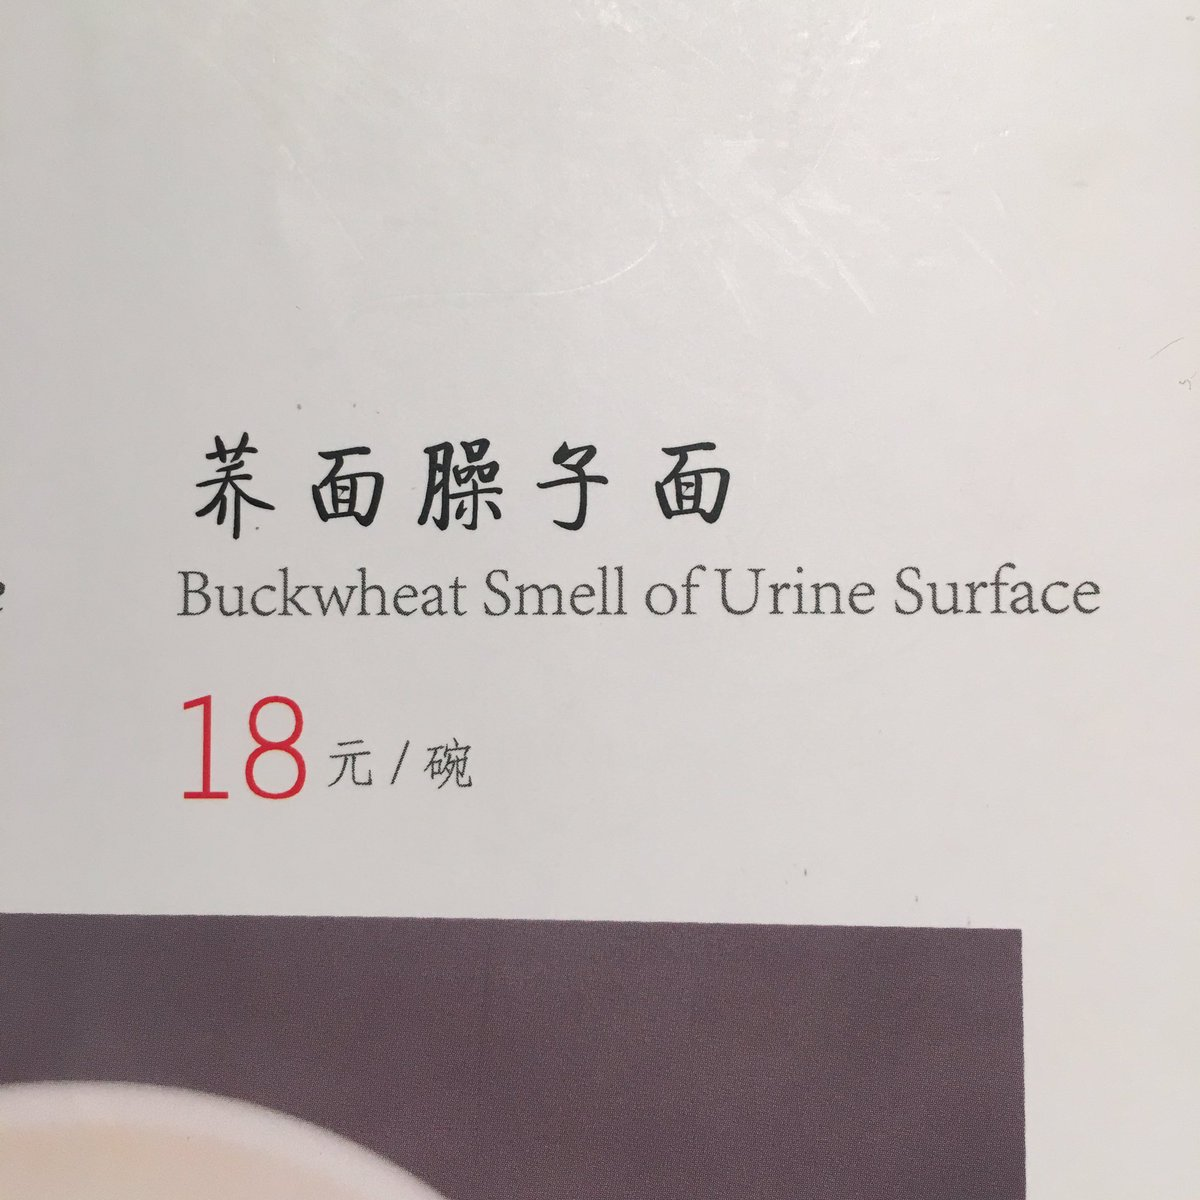 Another glittering classic of menu mistranslation! https://t.co/dviNNEiioI